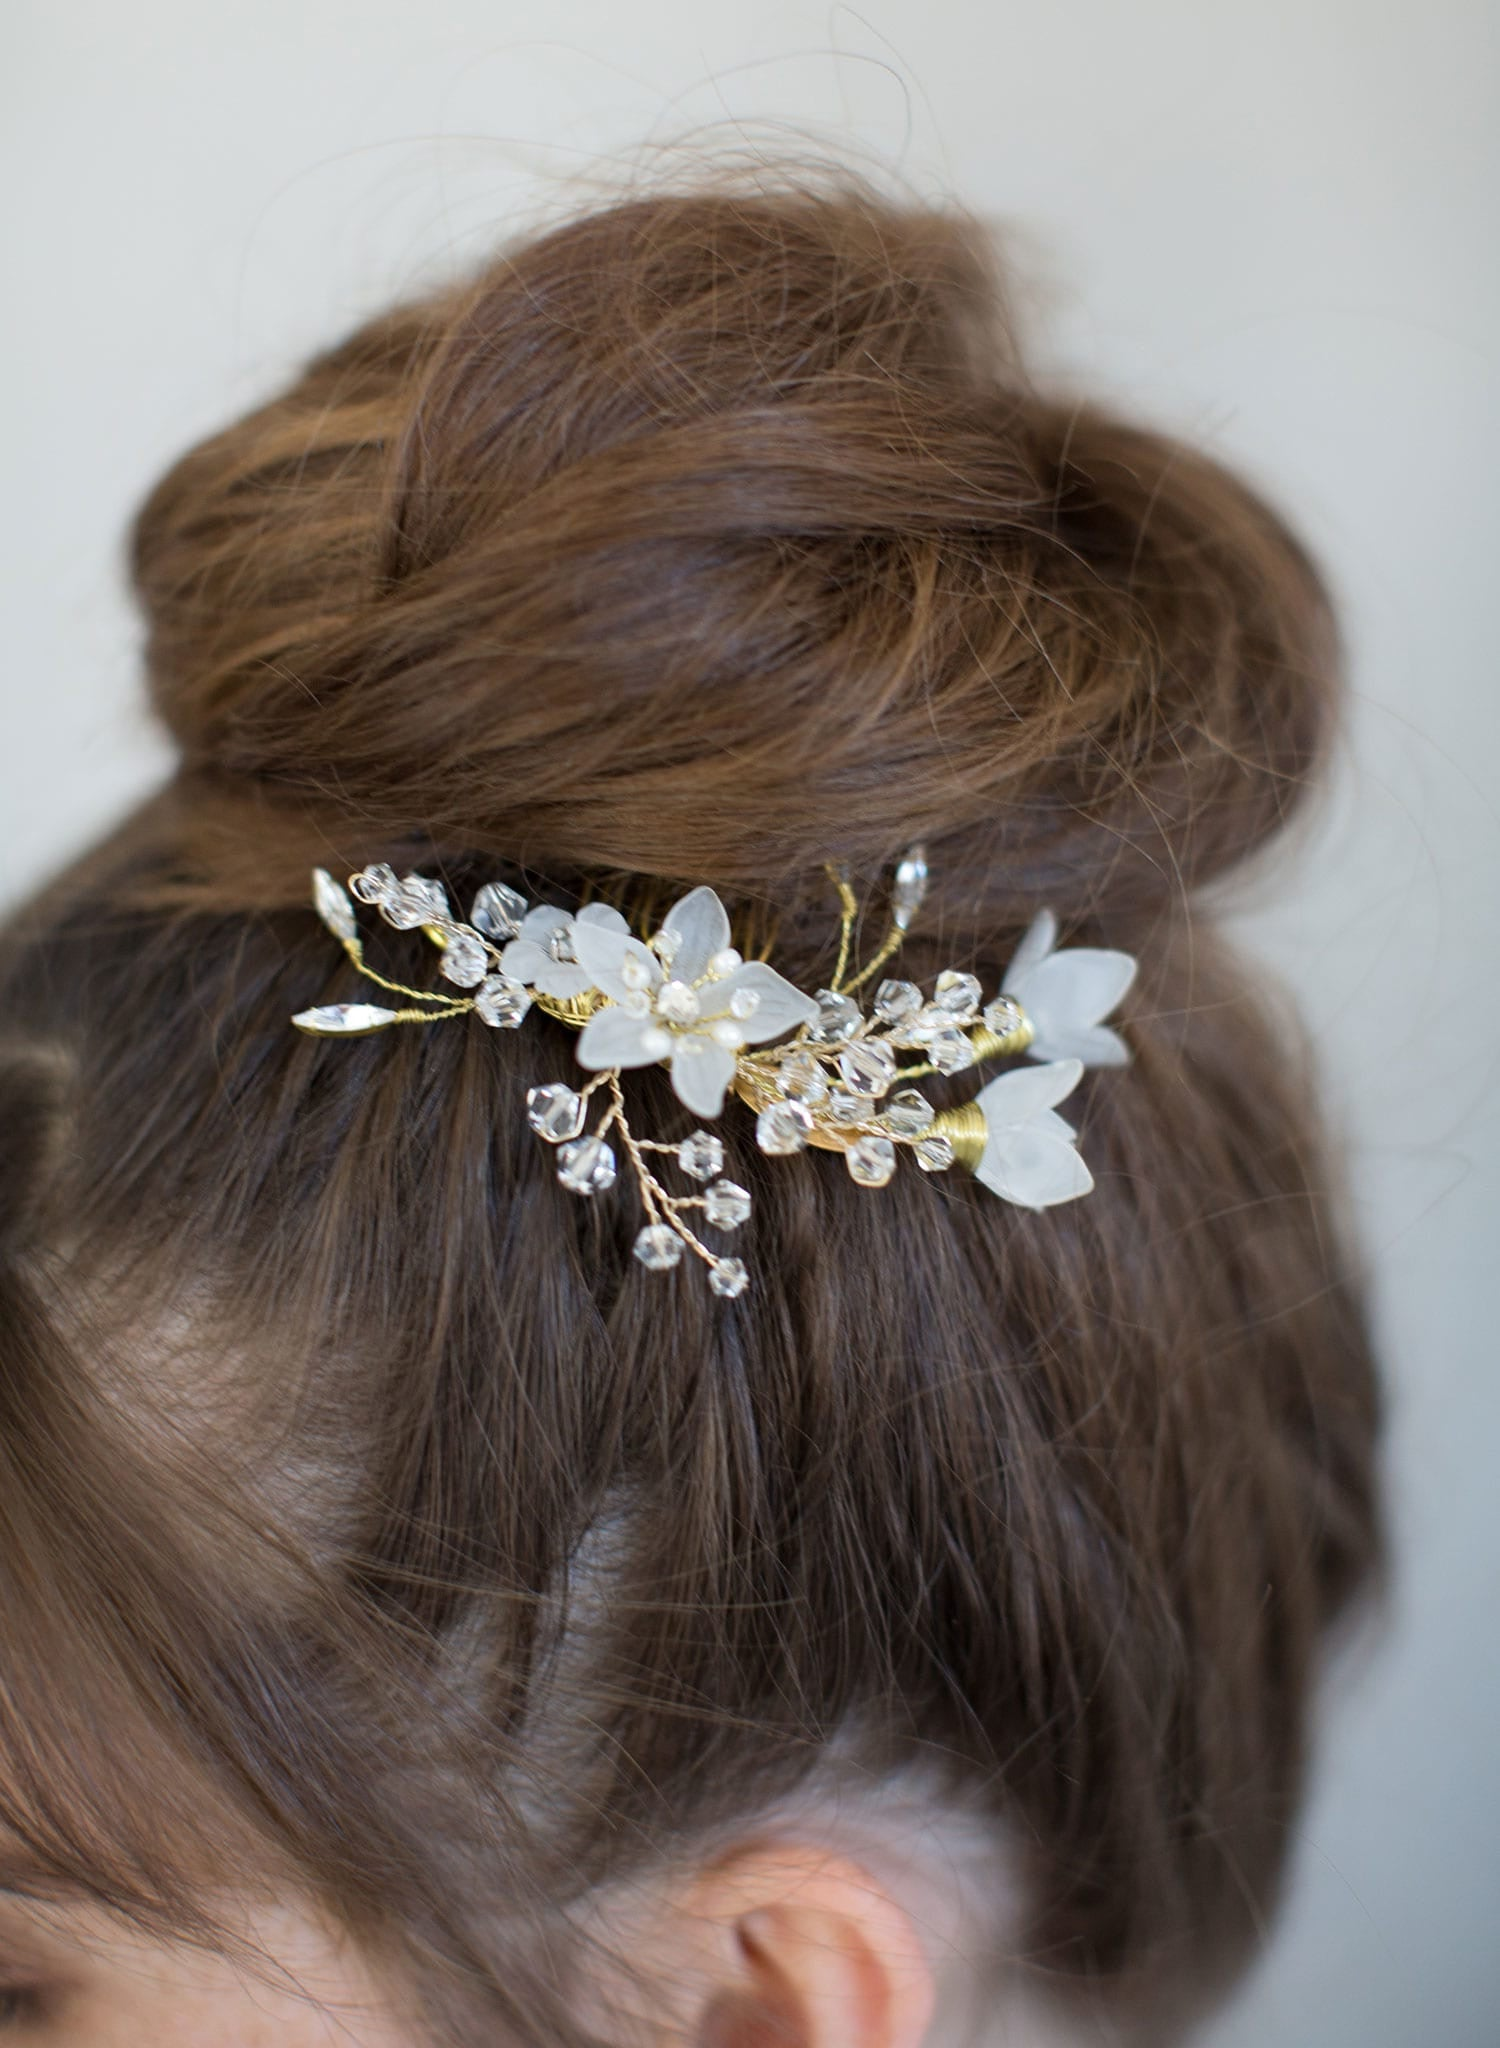 Dainty mystic floral hair comb - Style #767